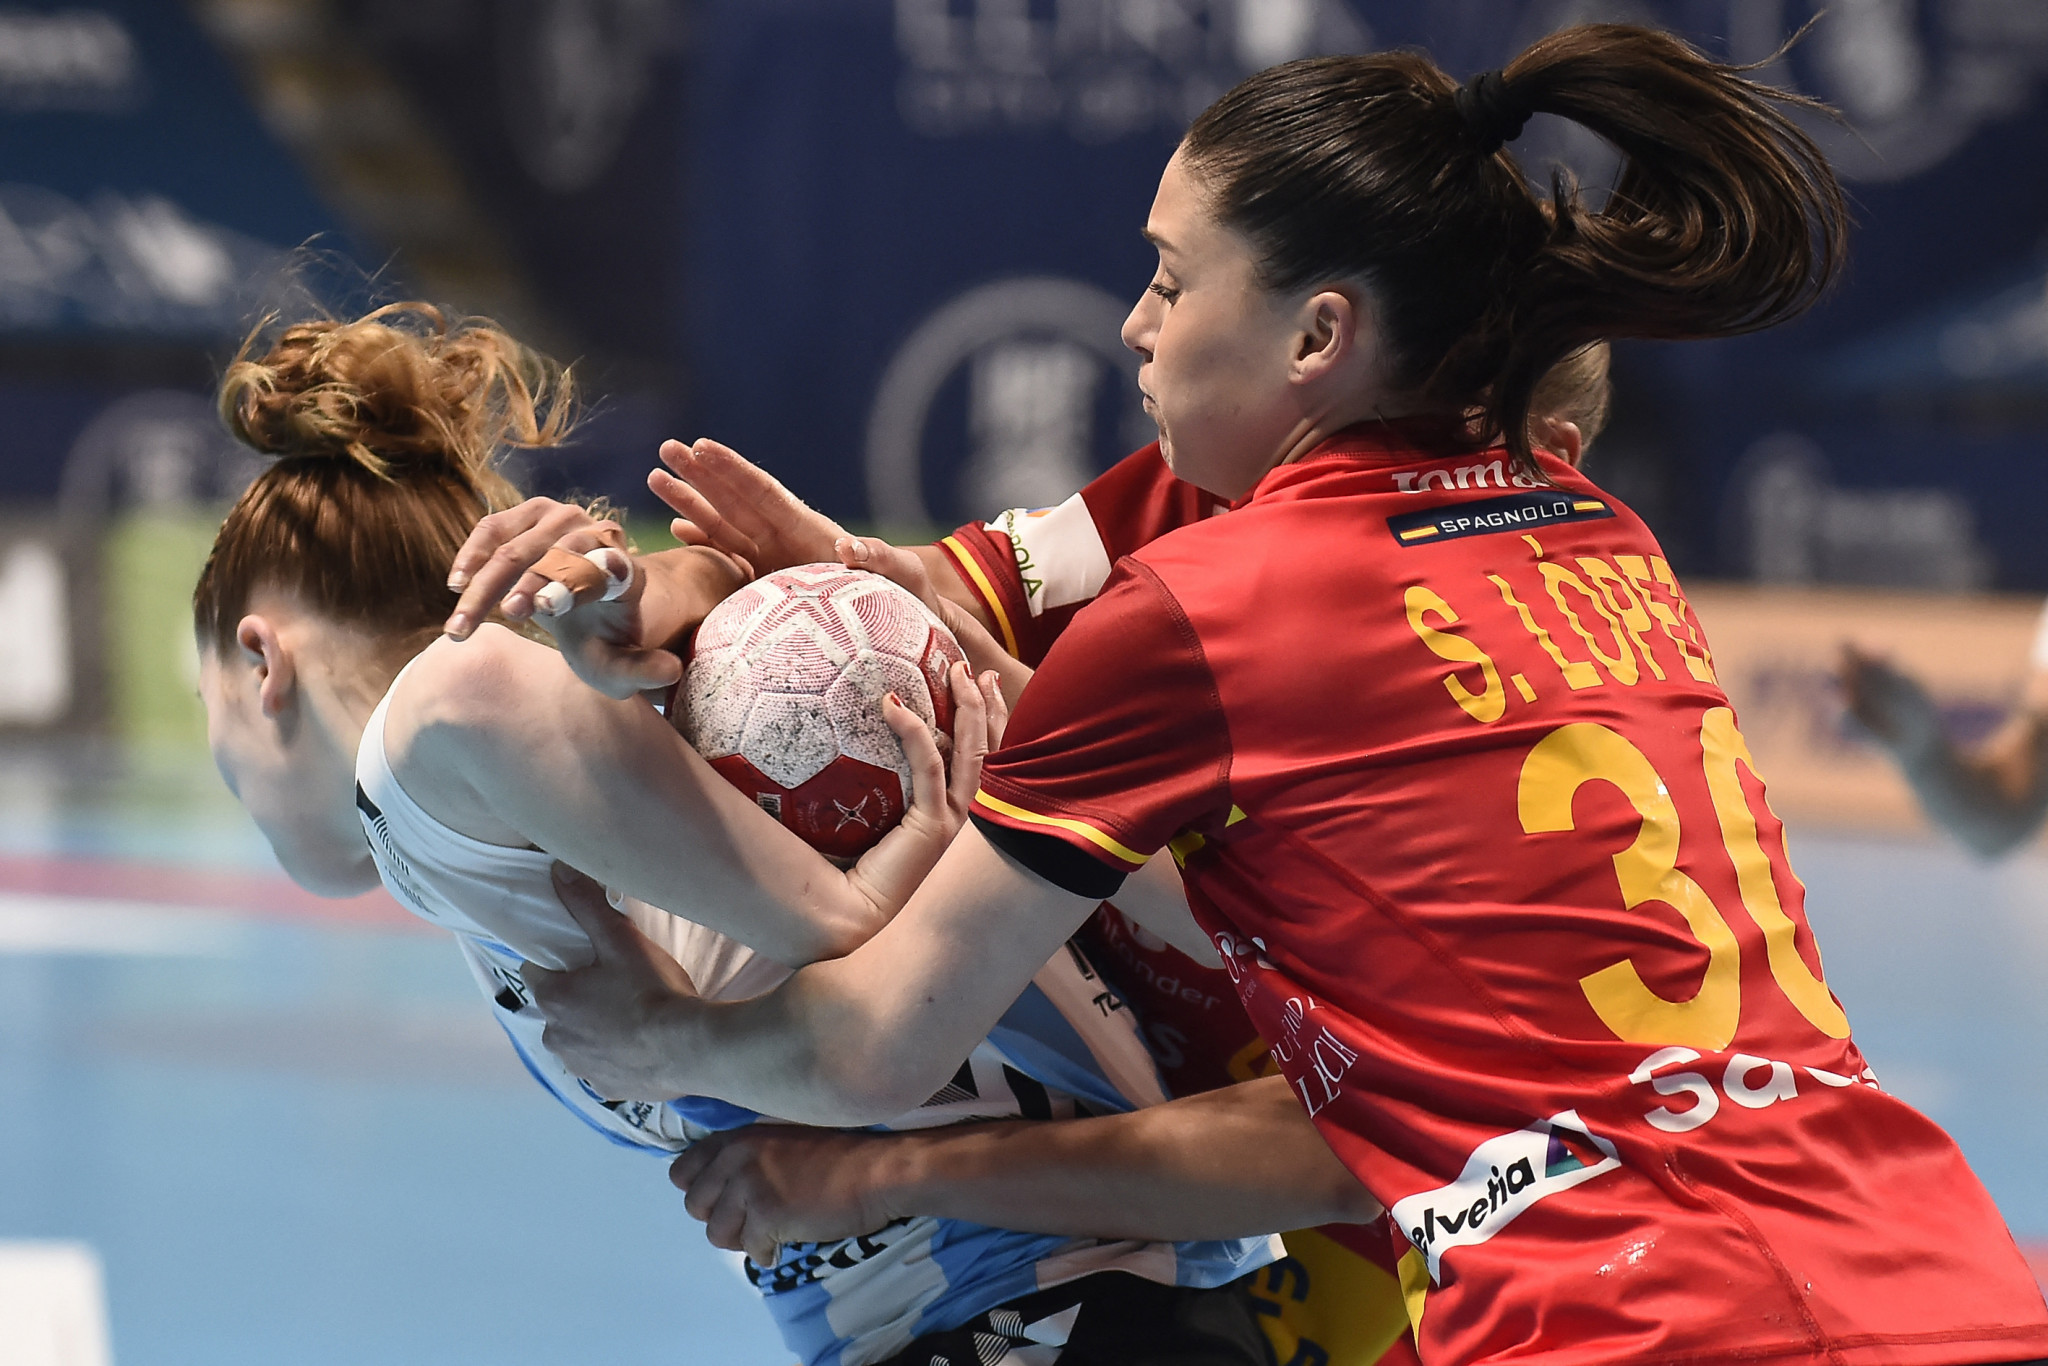 Spain (in red) claimed their place in the Tokyo 2020 women's handball tournament after beating Argentina ©Getty Images